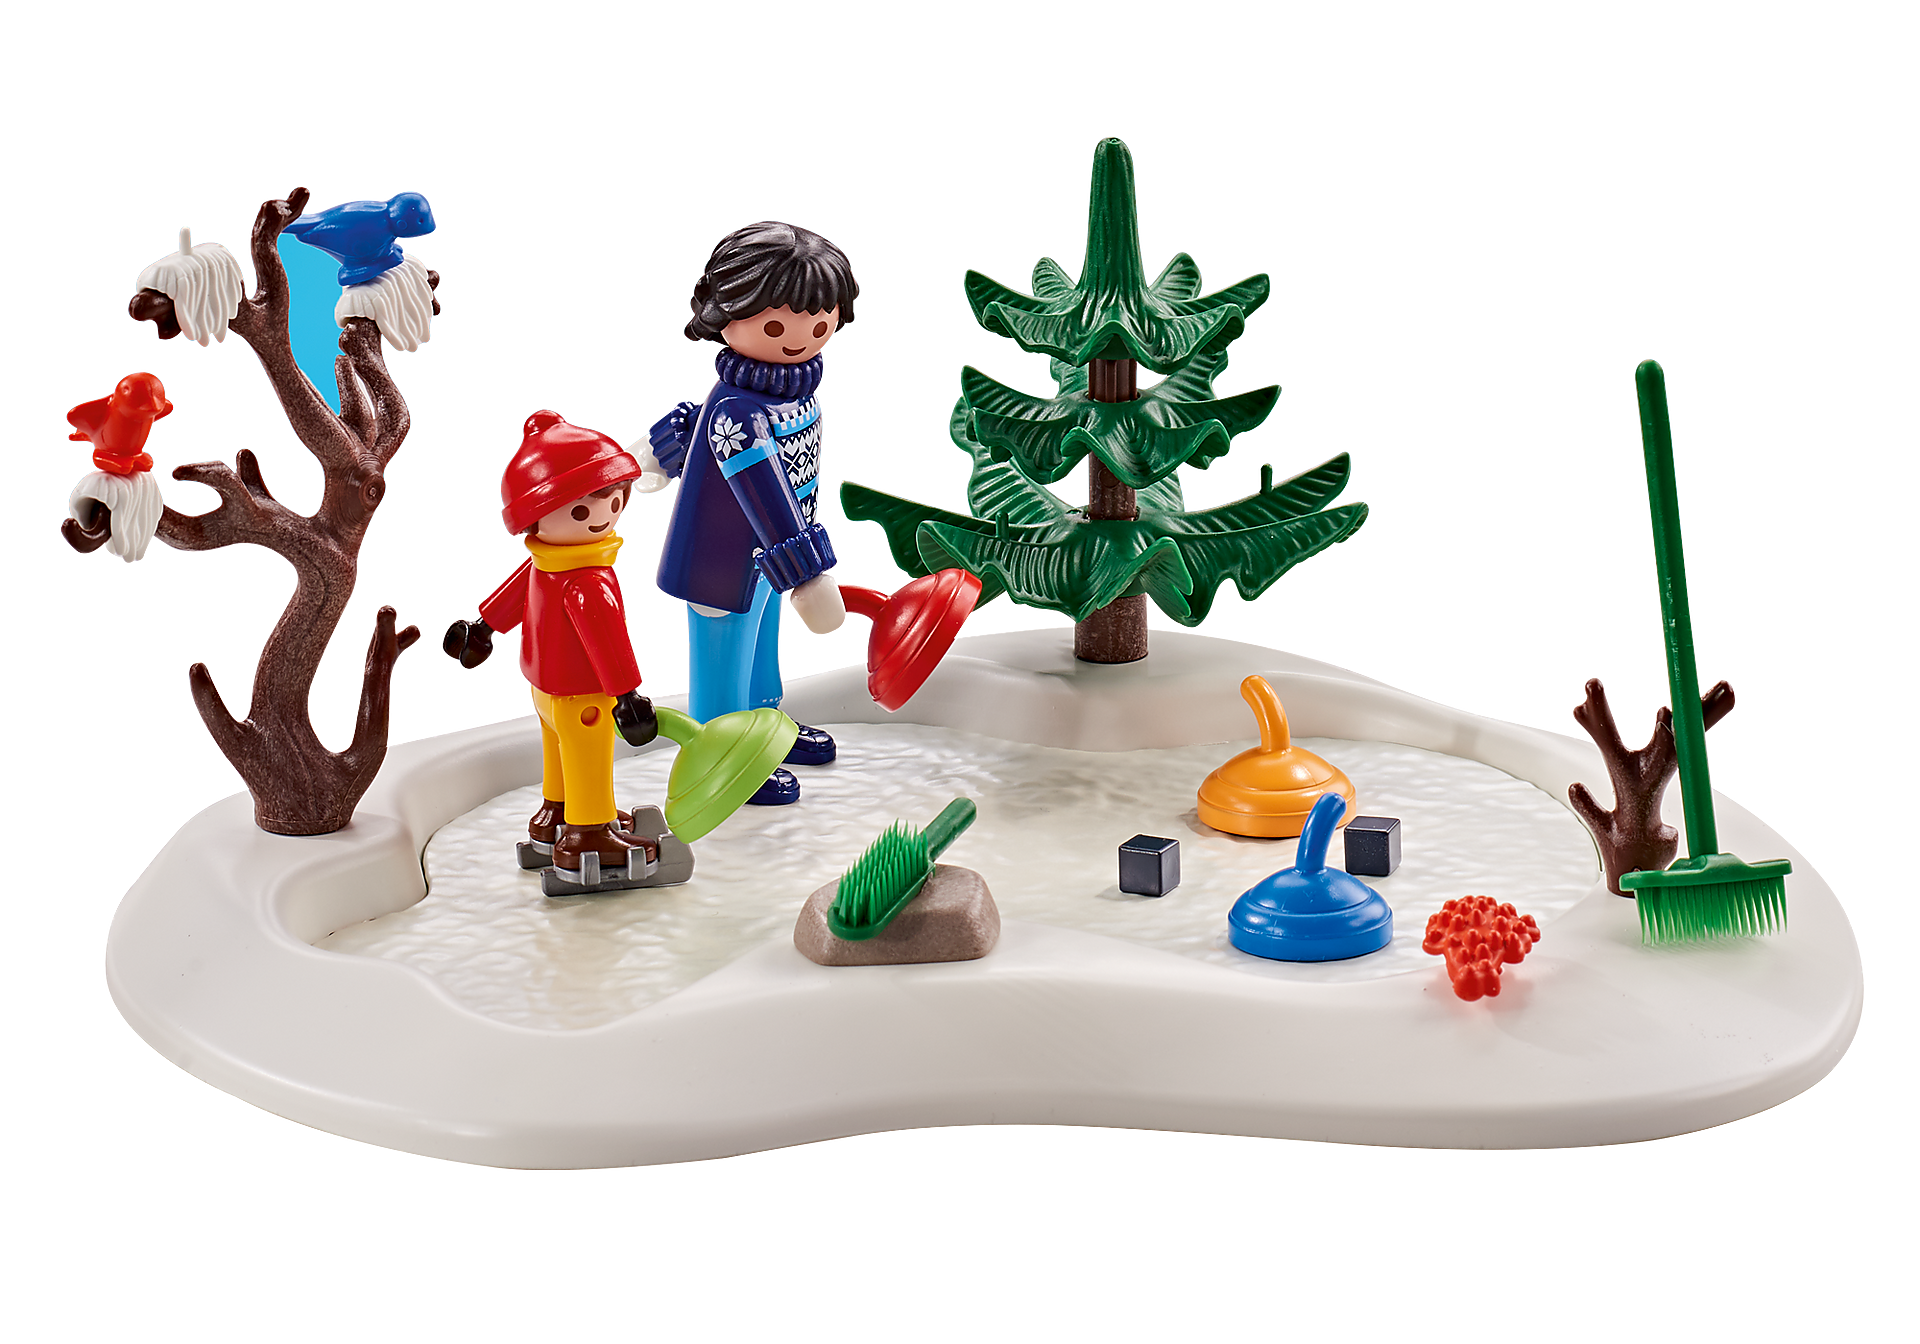 http://media.playmobil.com/i/playmobil/6560_product_detail/Curling